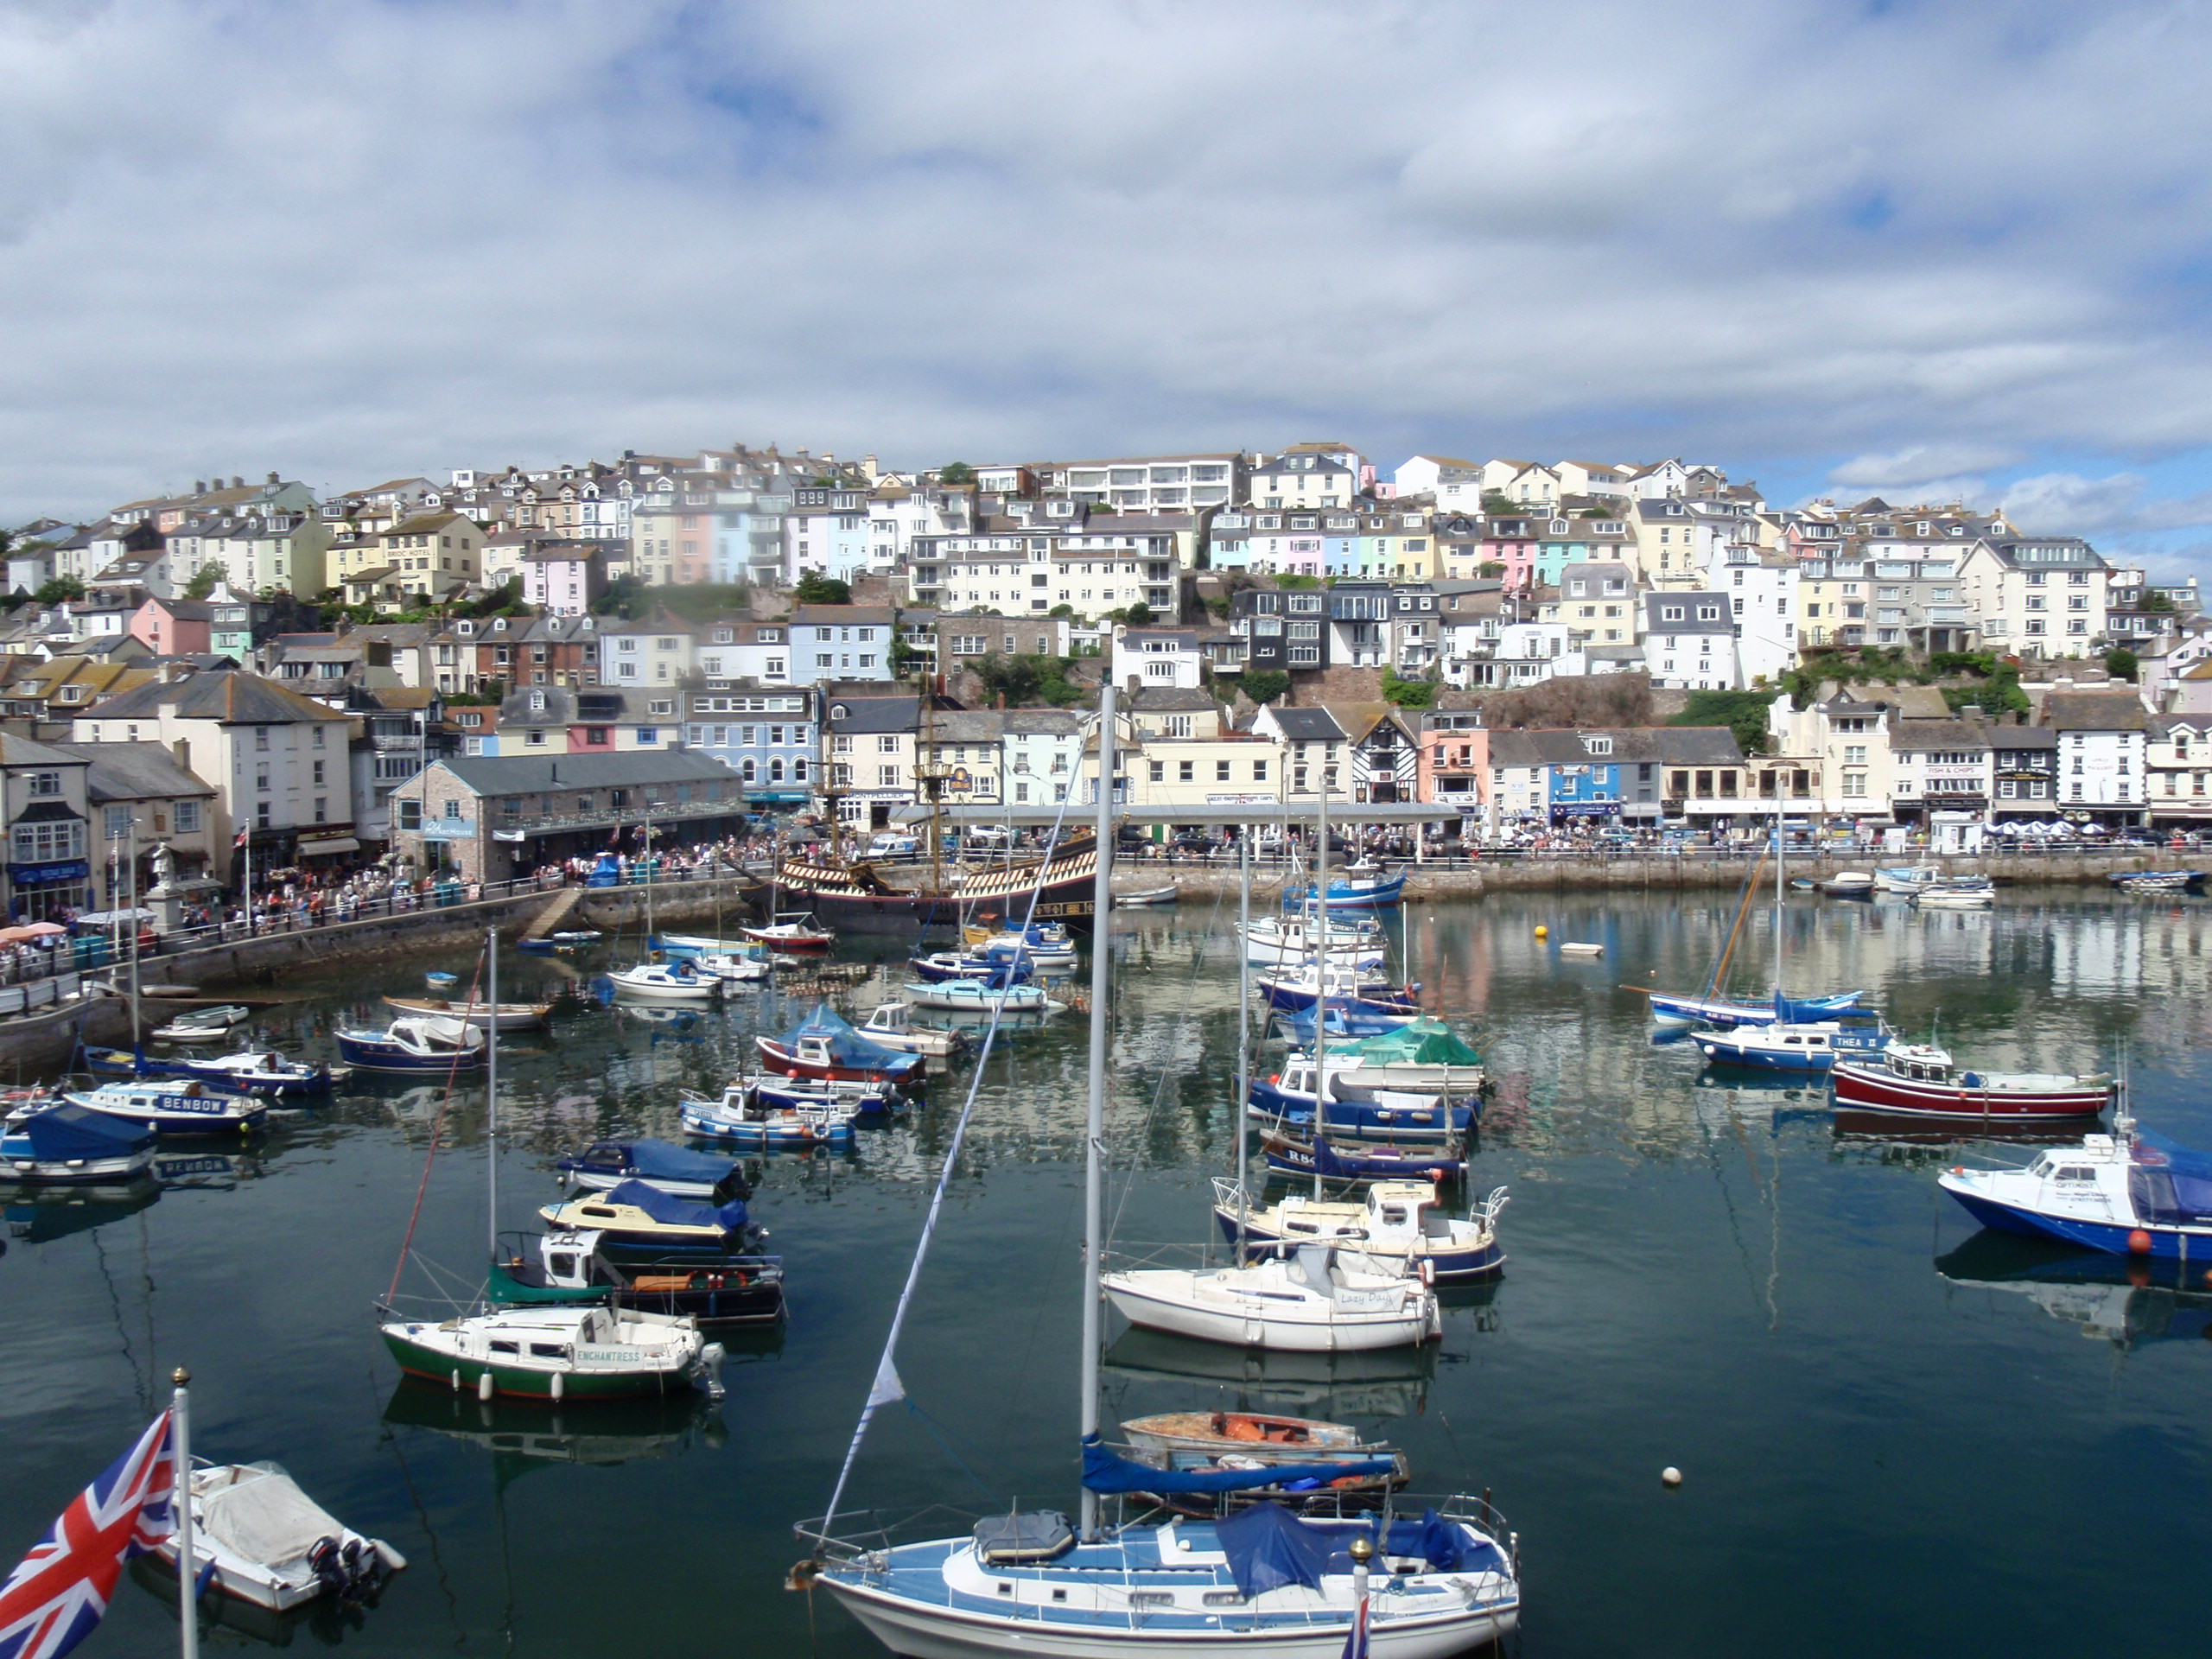 Brixham has many annual fun and interesting events that take place throughout the year.